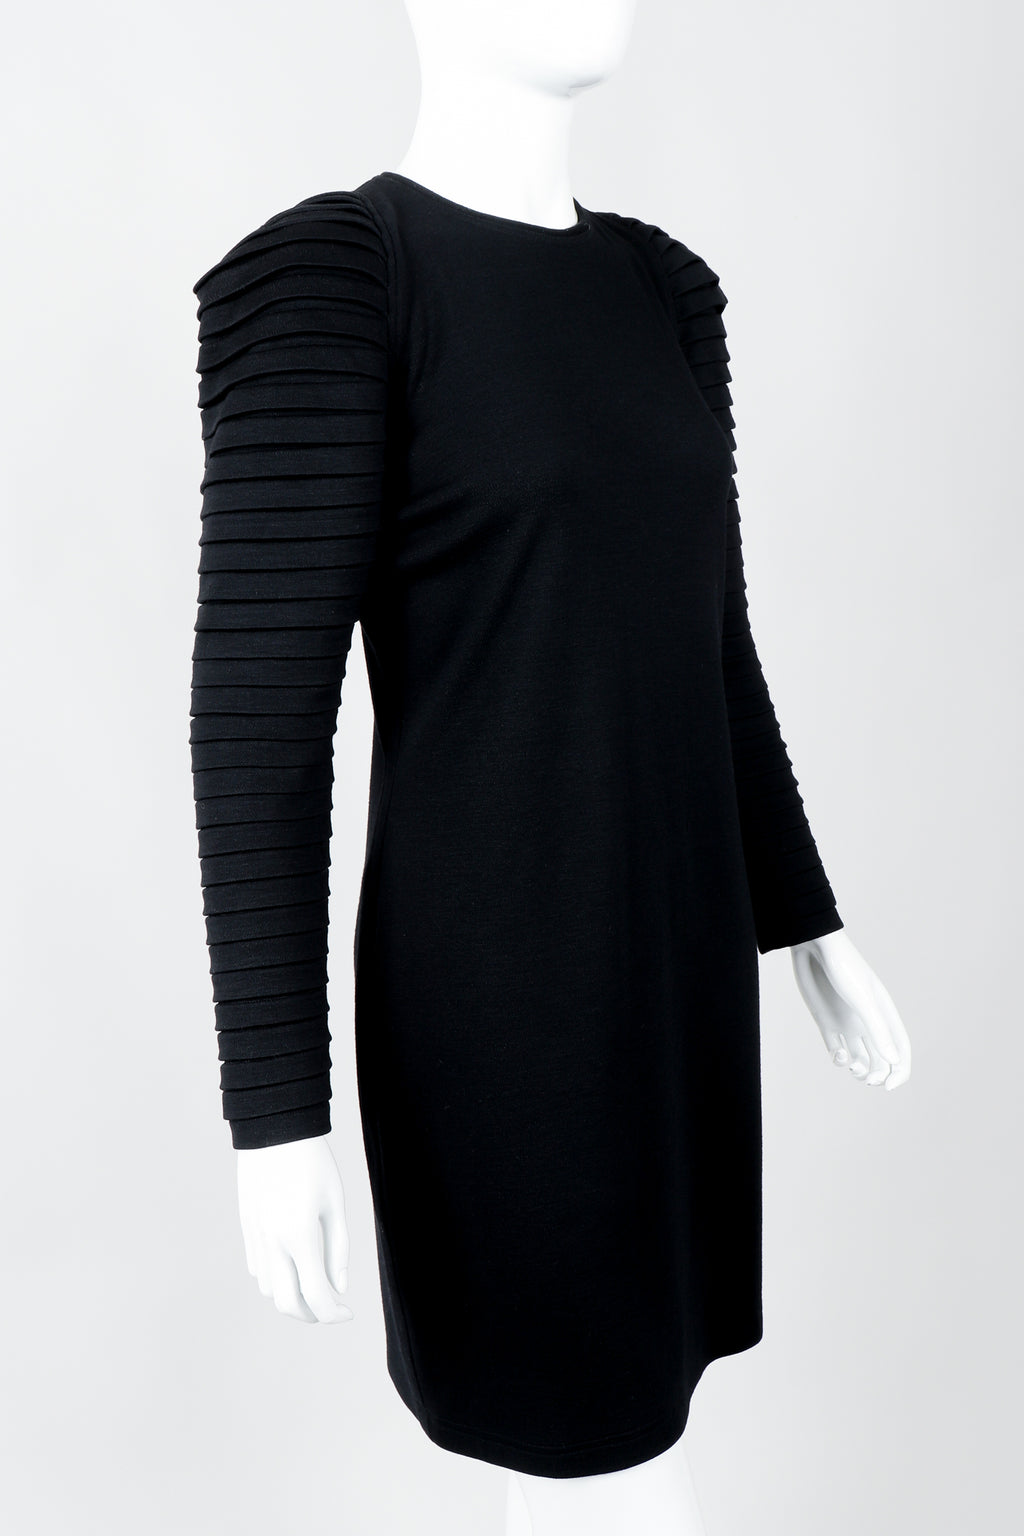 Vintage Genny Pleated Sleeve Bodycon Cocktail Dress on Mannequin side crop at Recess Los Angeles